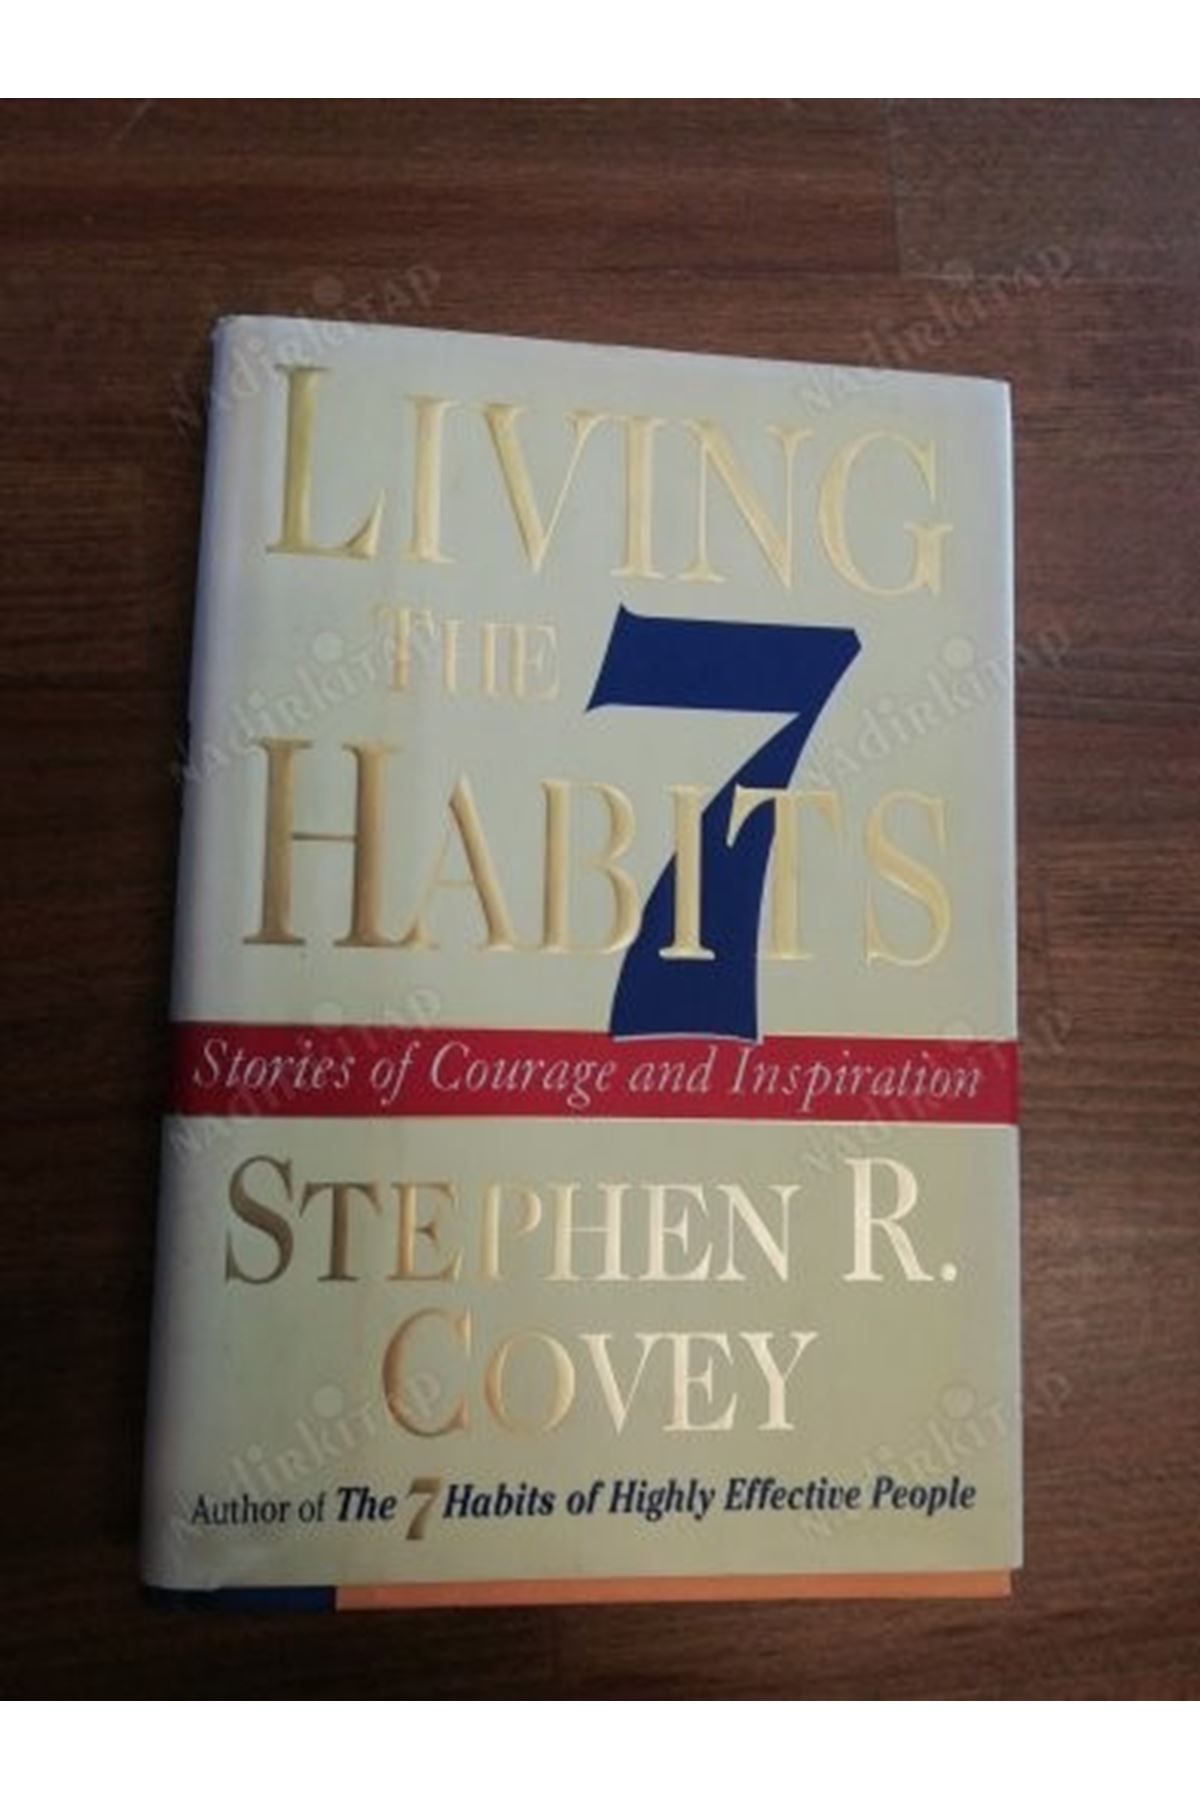 STEPHEN R.COVEY - LIVING THE HABITS